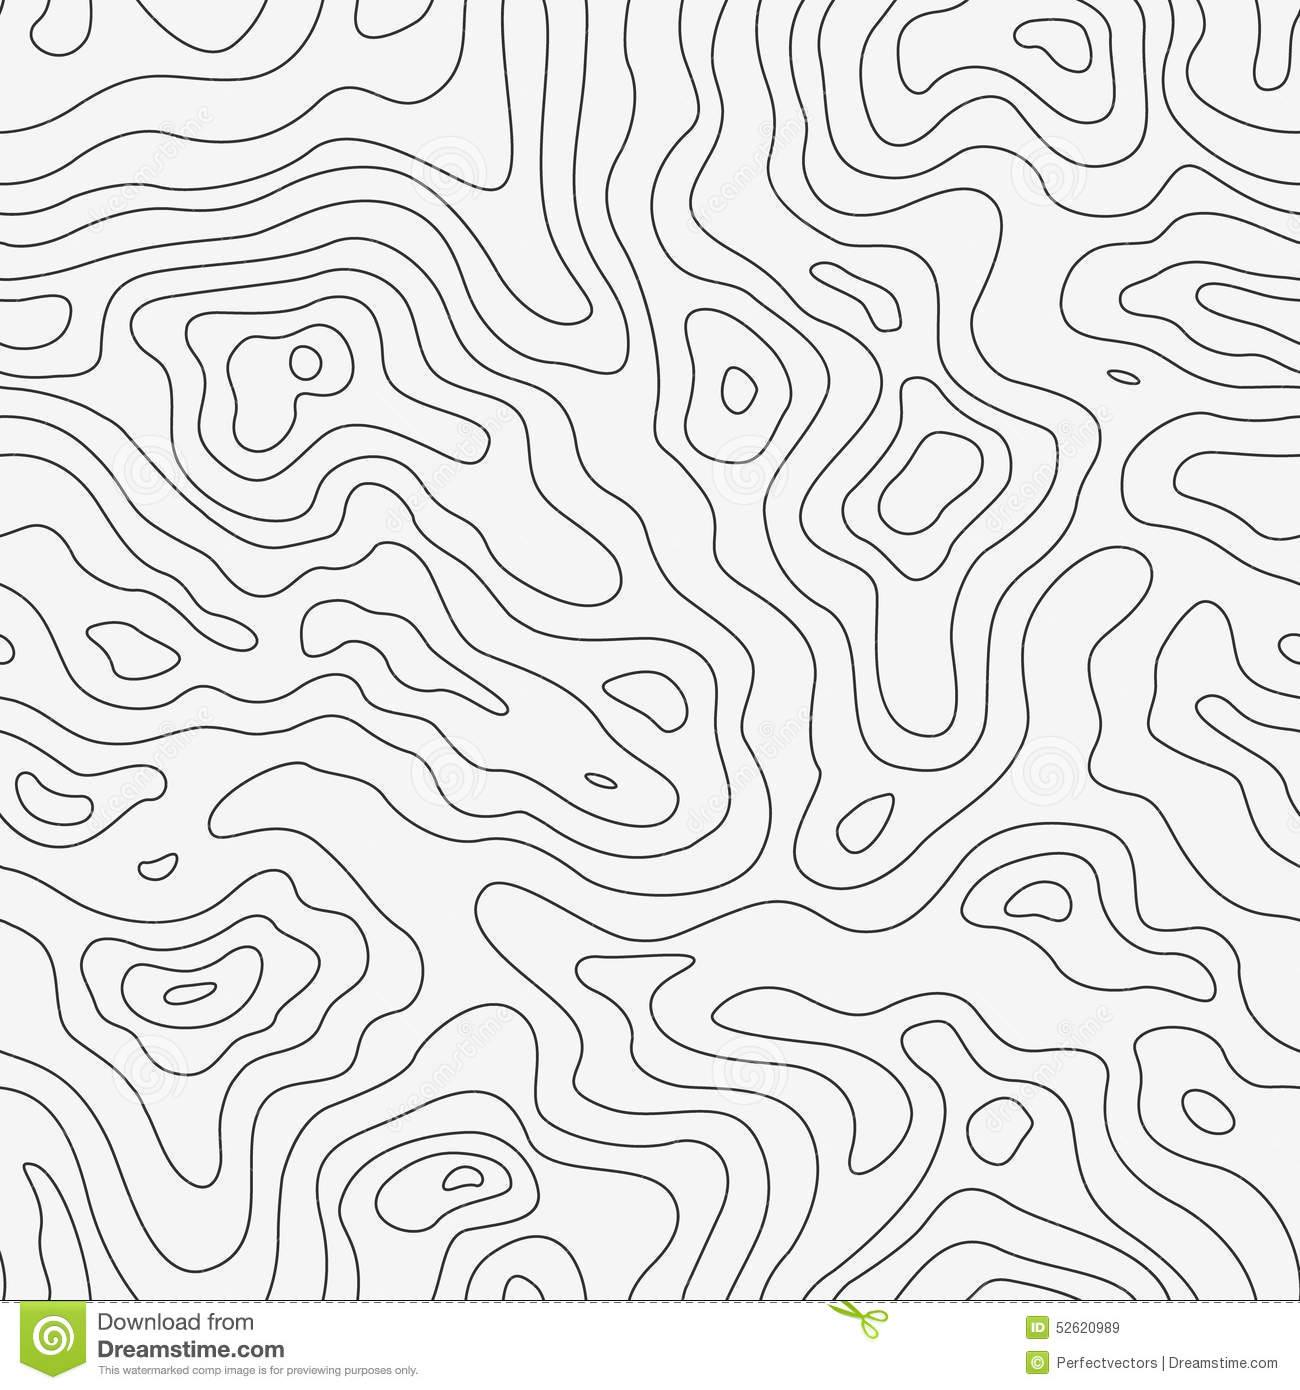 Topographic map clipart.